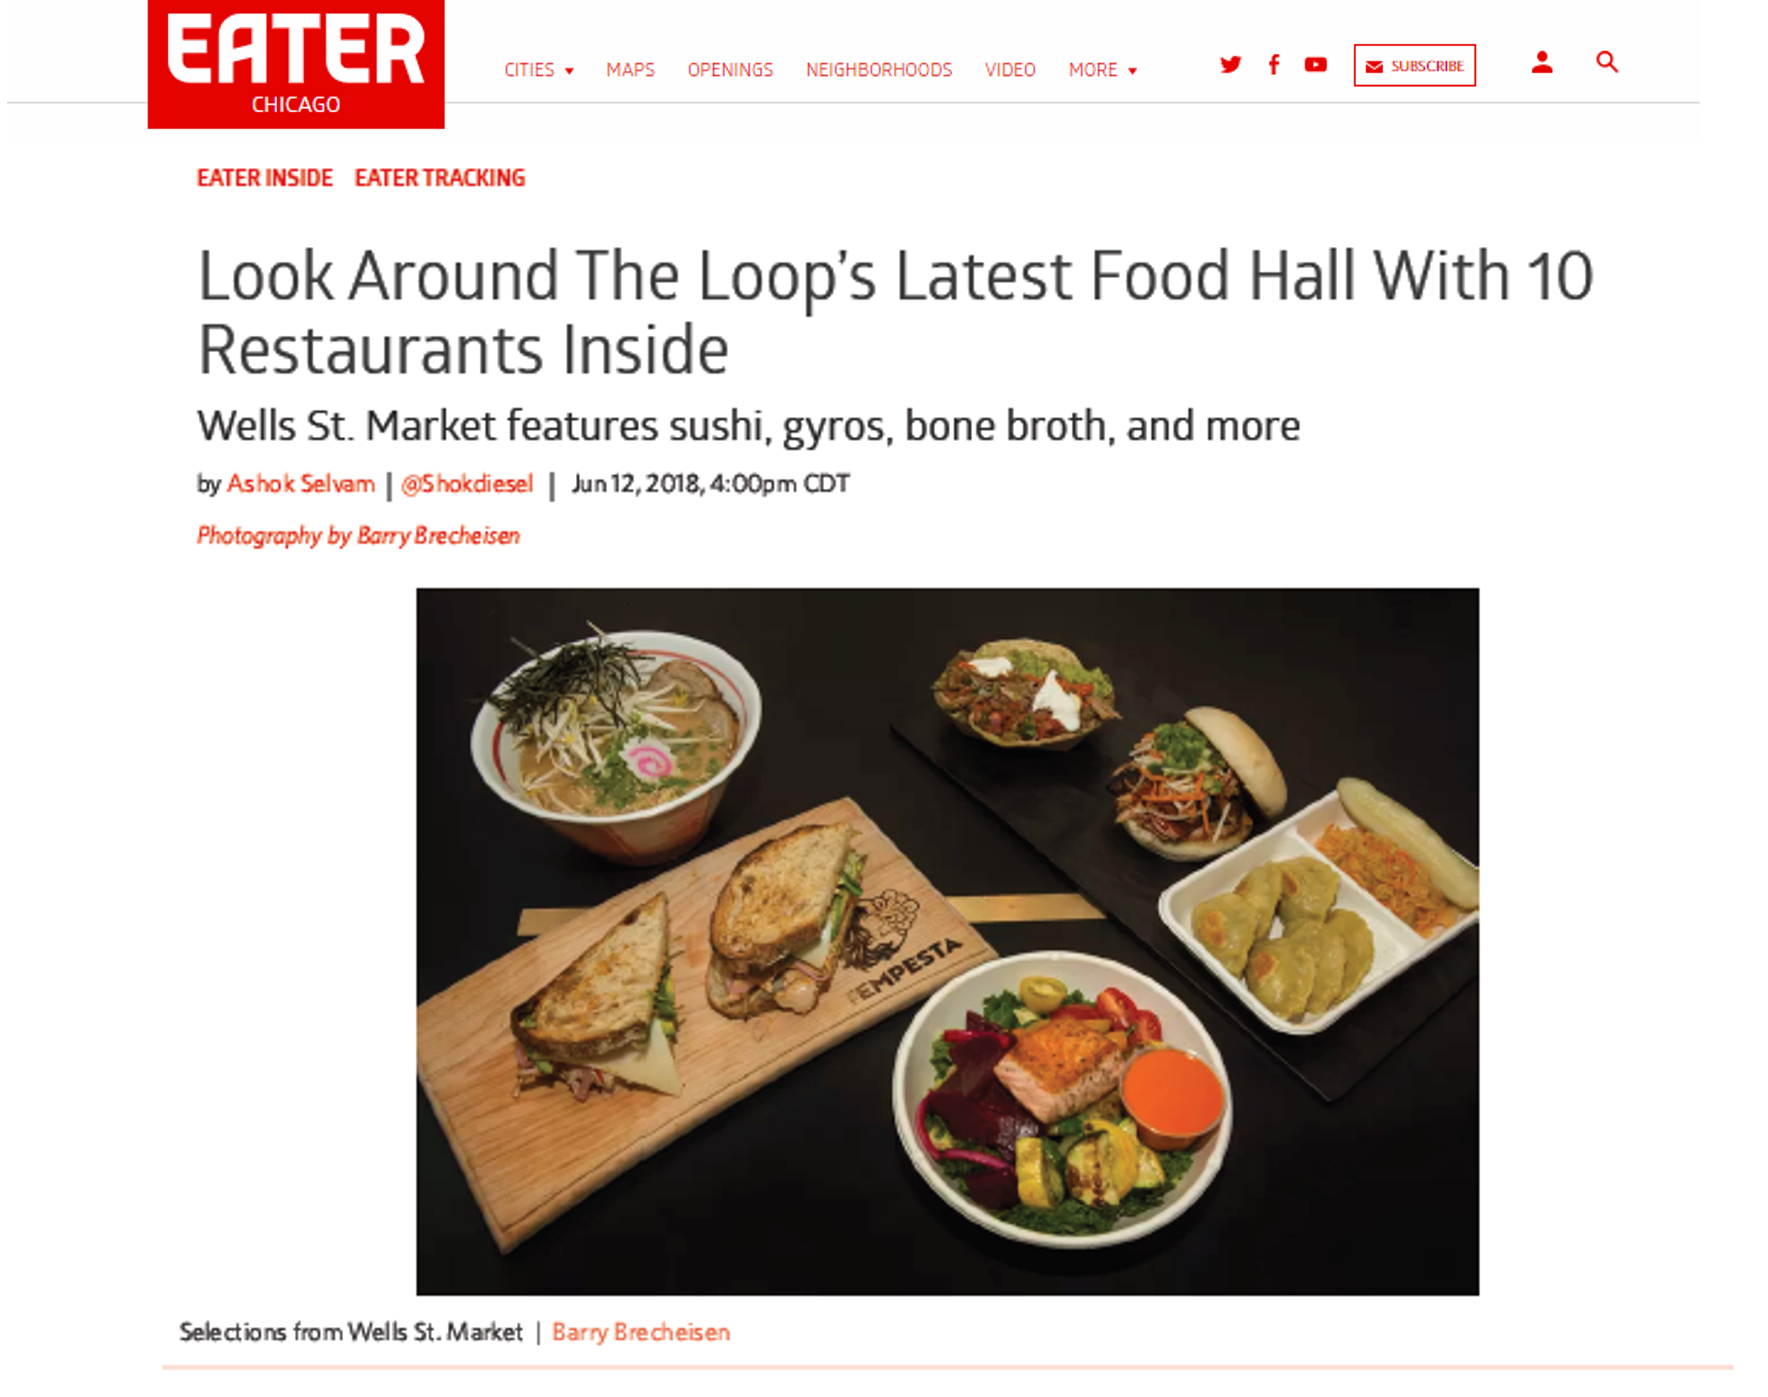 From Eater Chicago, June 12, 2018:  https://chicago.eater.com/2018/6/12/17454272/wells-st-market-food-hall-opening-dateloop-photos-images